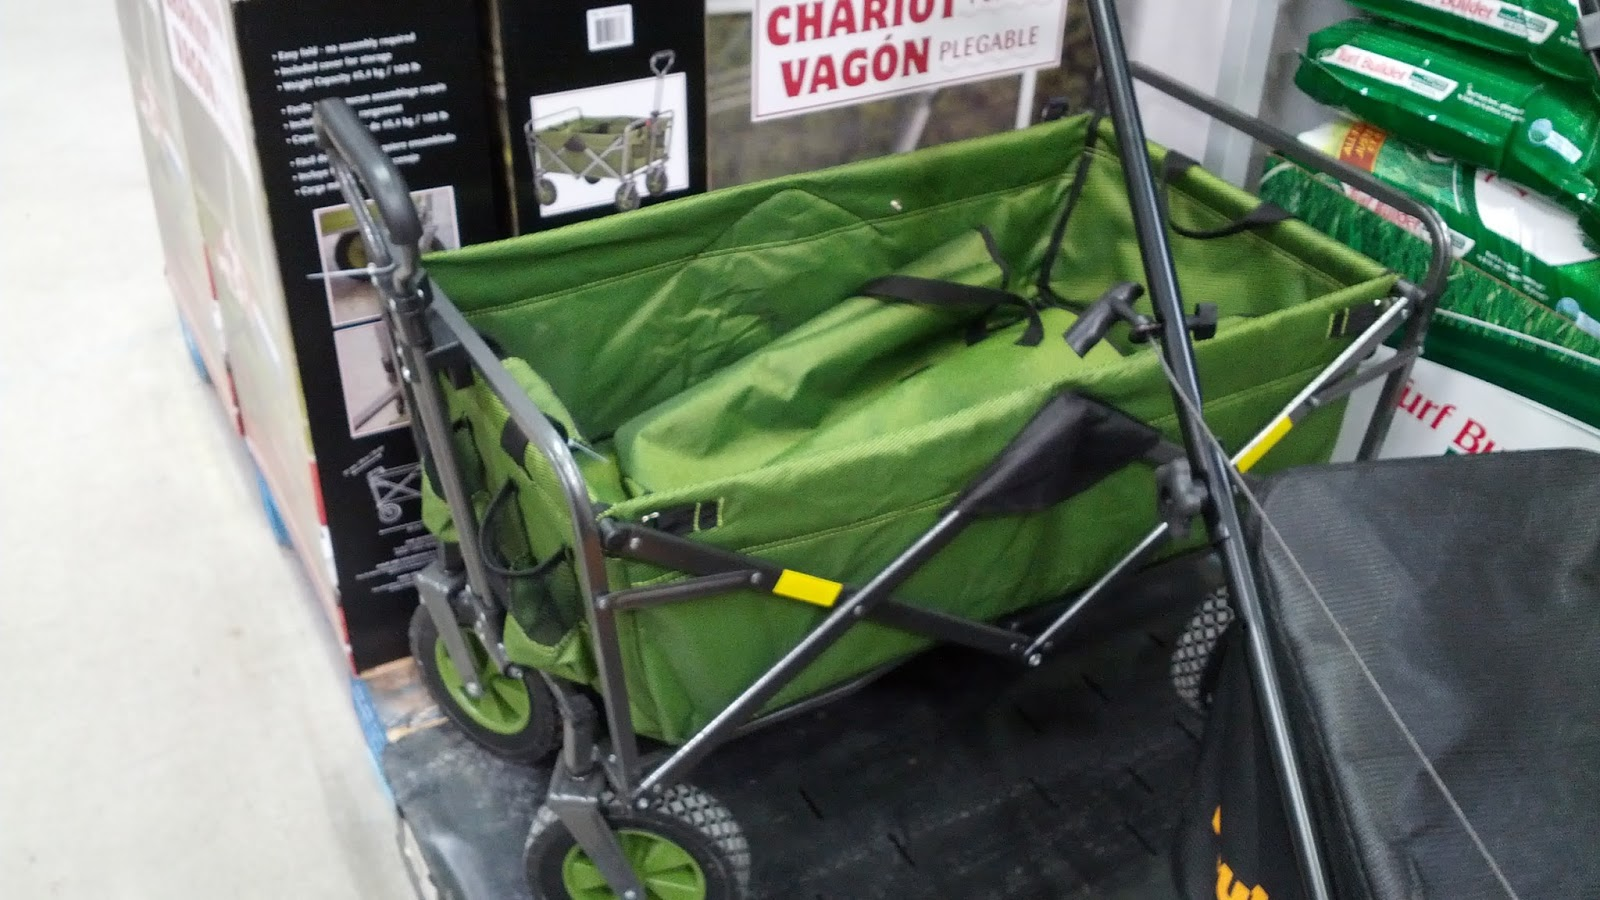 Lug equipment with the Collapsible Wagon